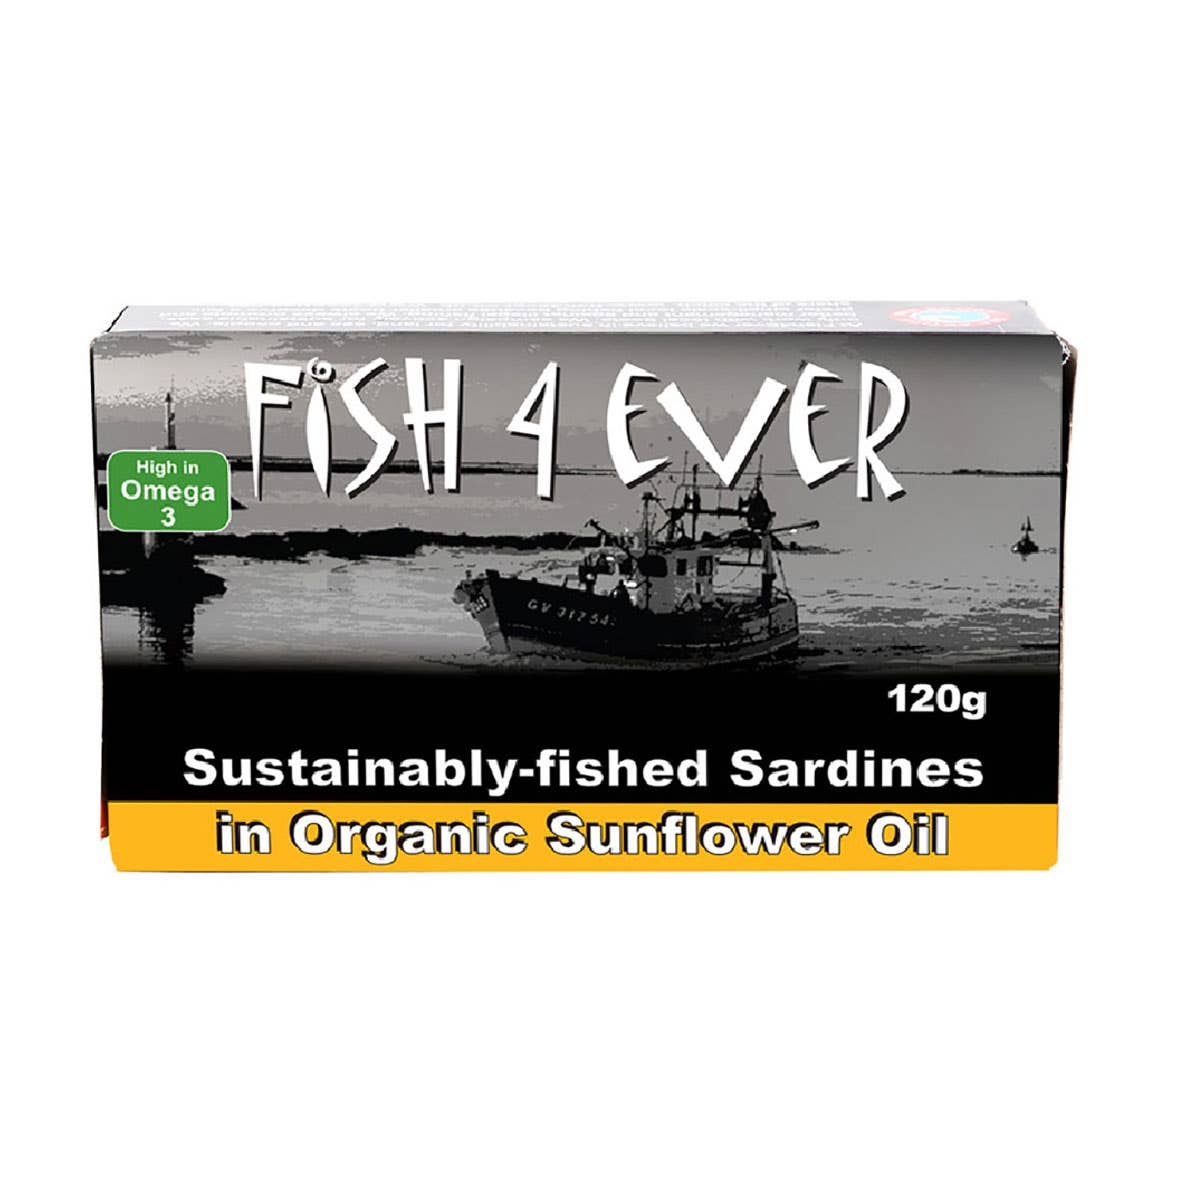 Fish 4 Ever Whole Sardines in Organic Sunflower Oil (120g)